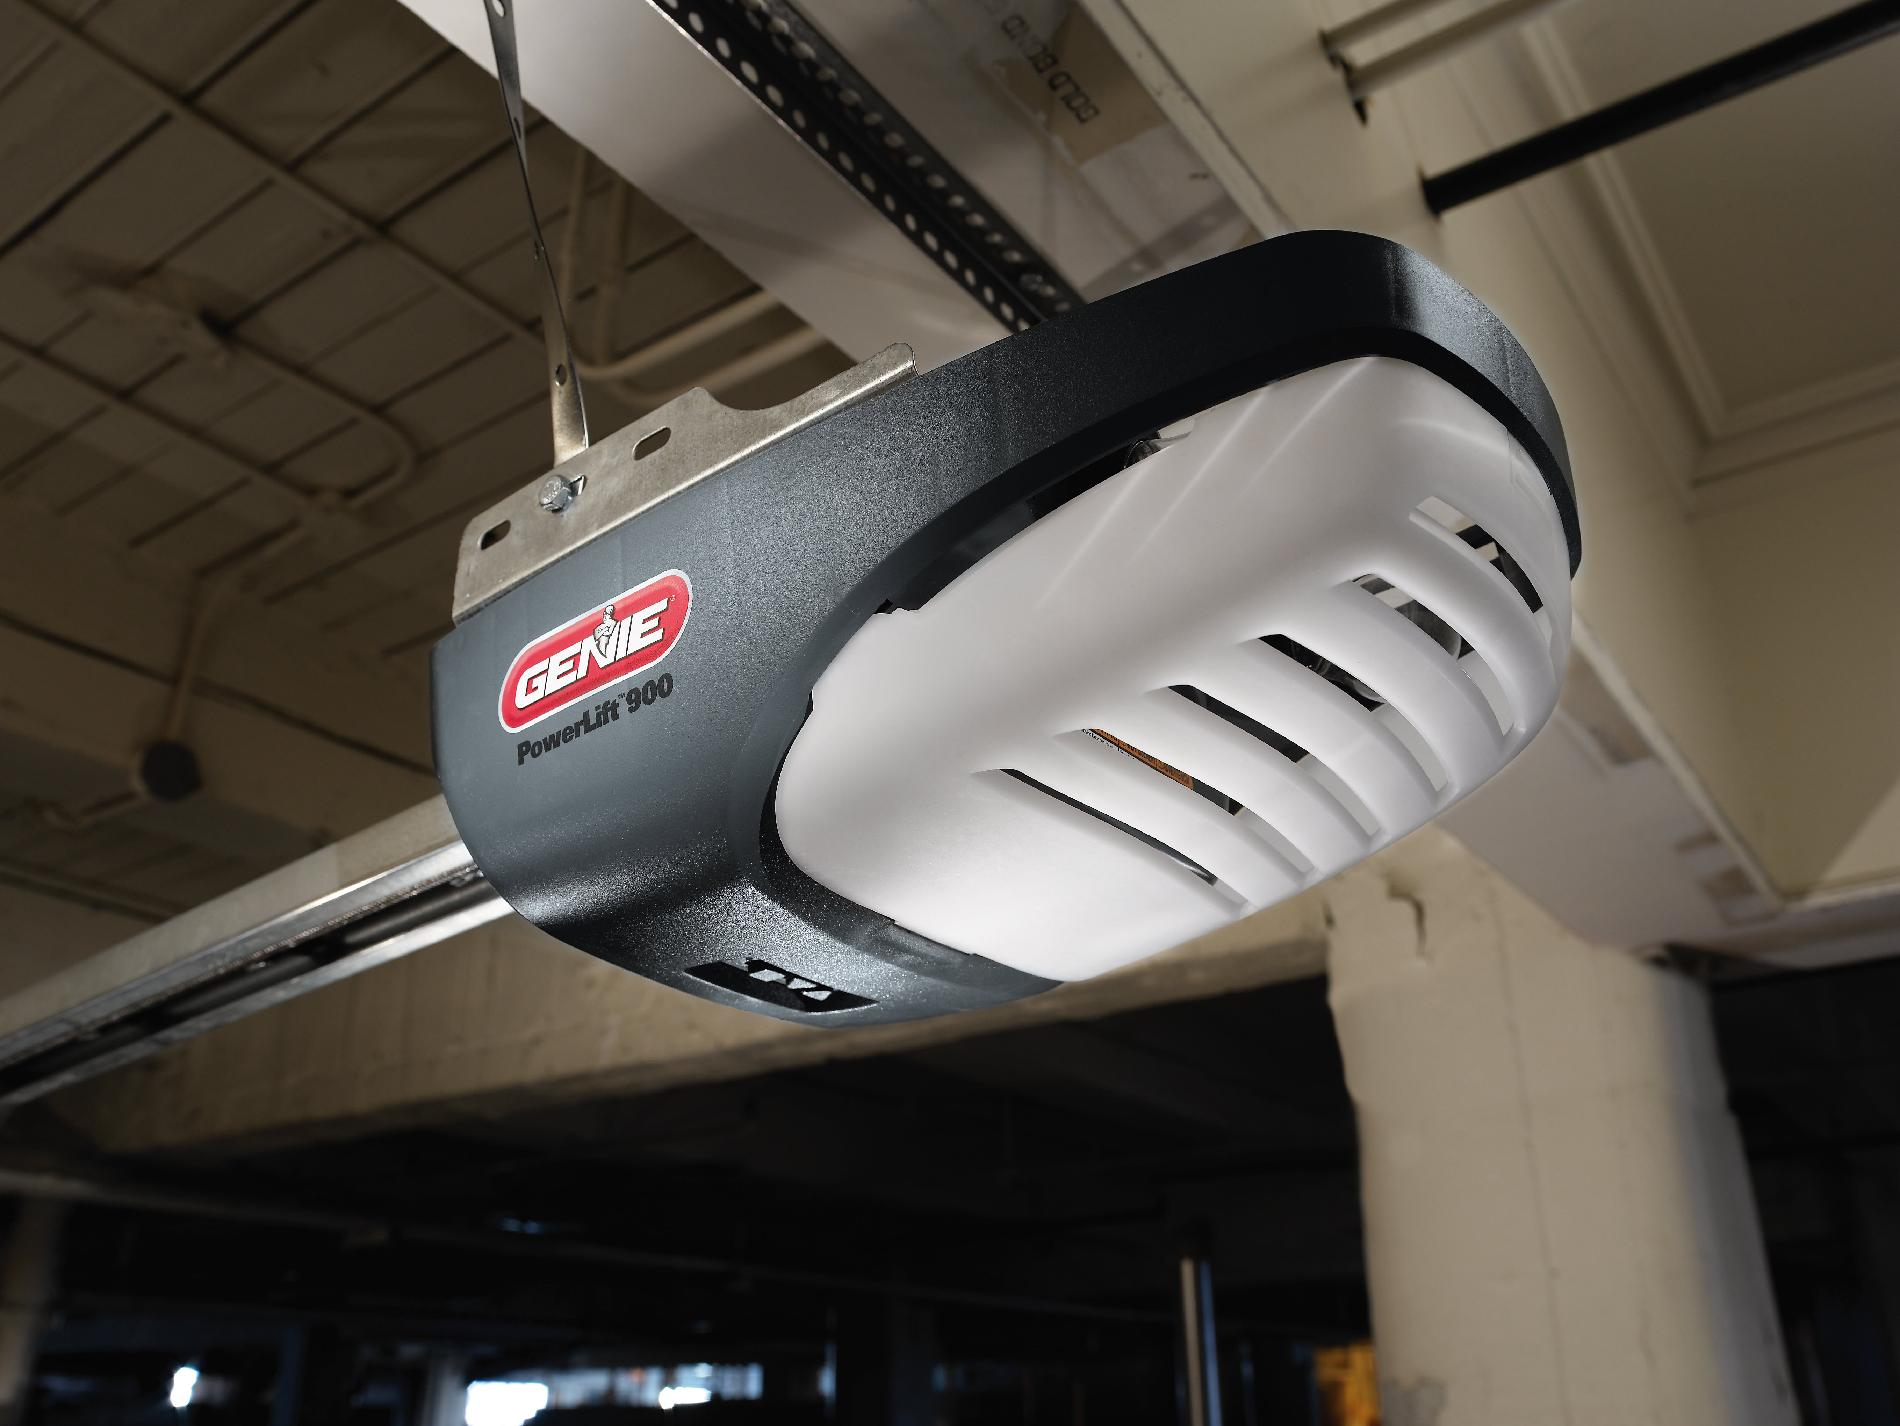 Genie PowerLift 900 1/2 HP Screw Drive Garage Door